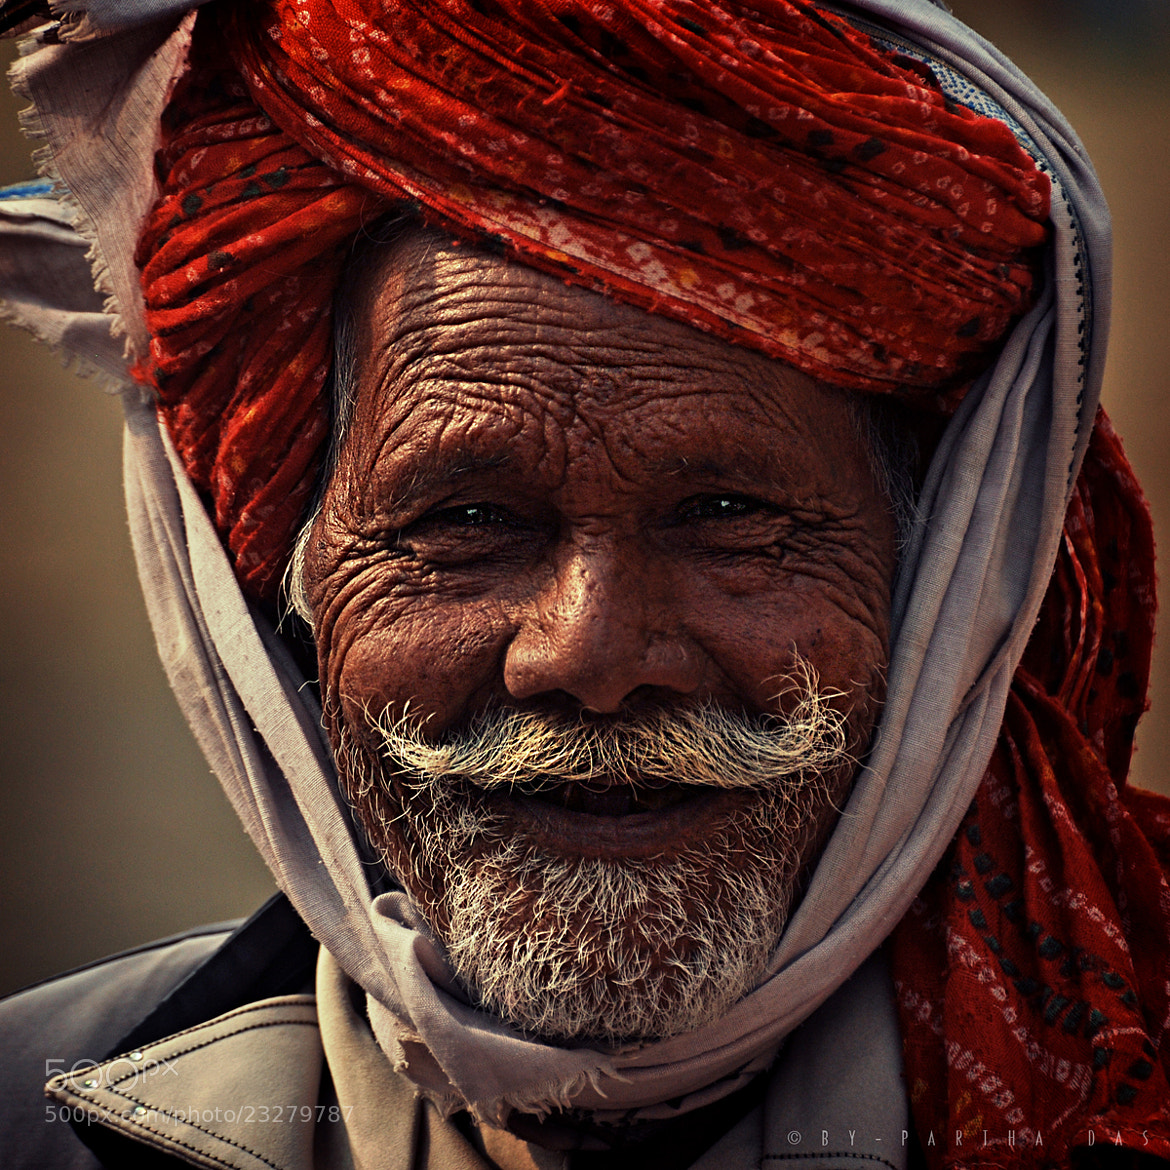 Photograph face4 by Partha Das on 500px